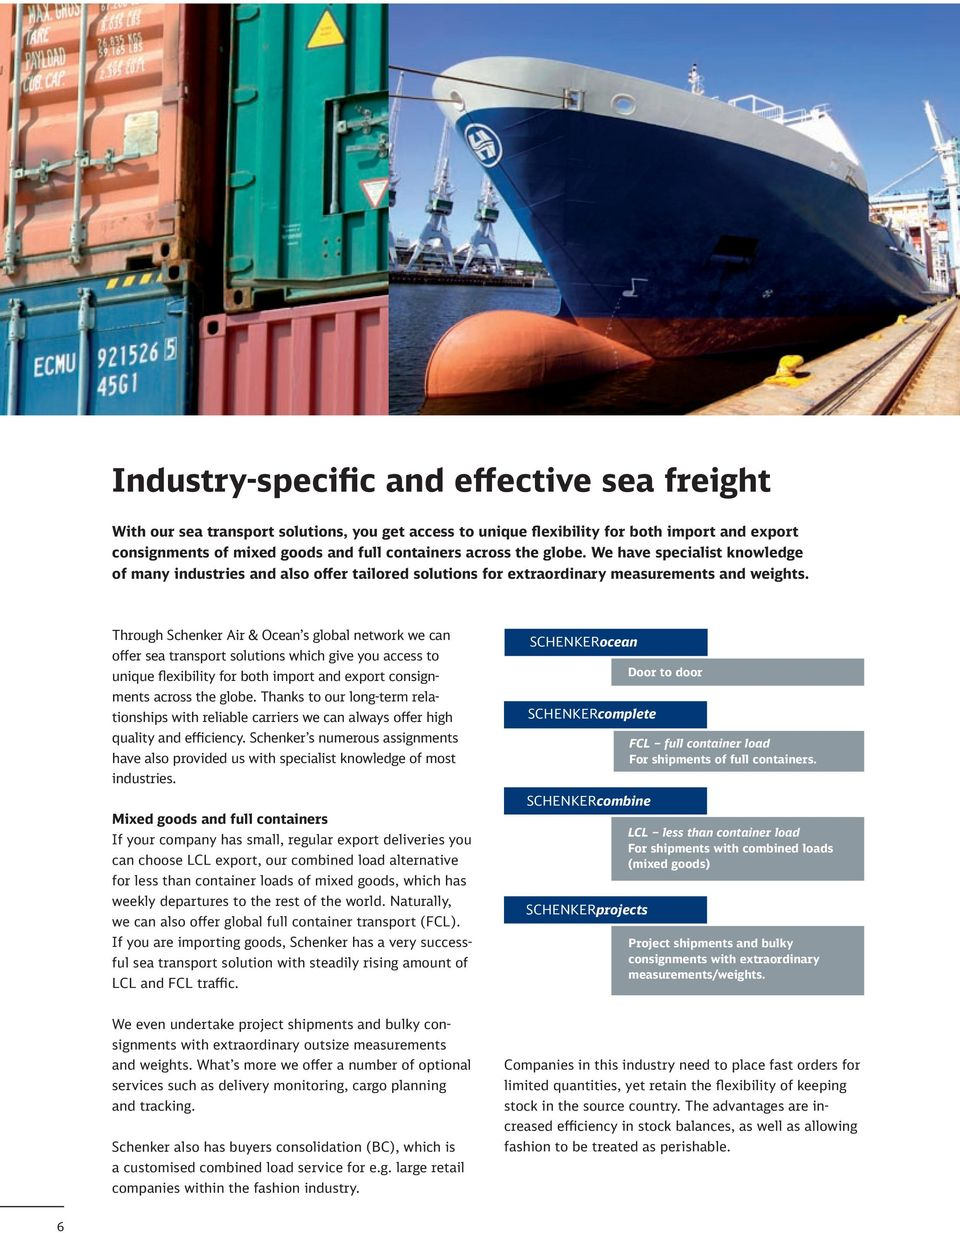 Schenker Air & Ocean Efficient air and sea freight all over